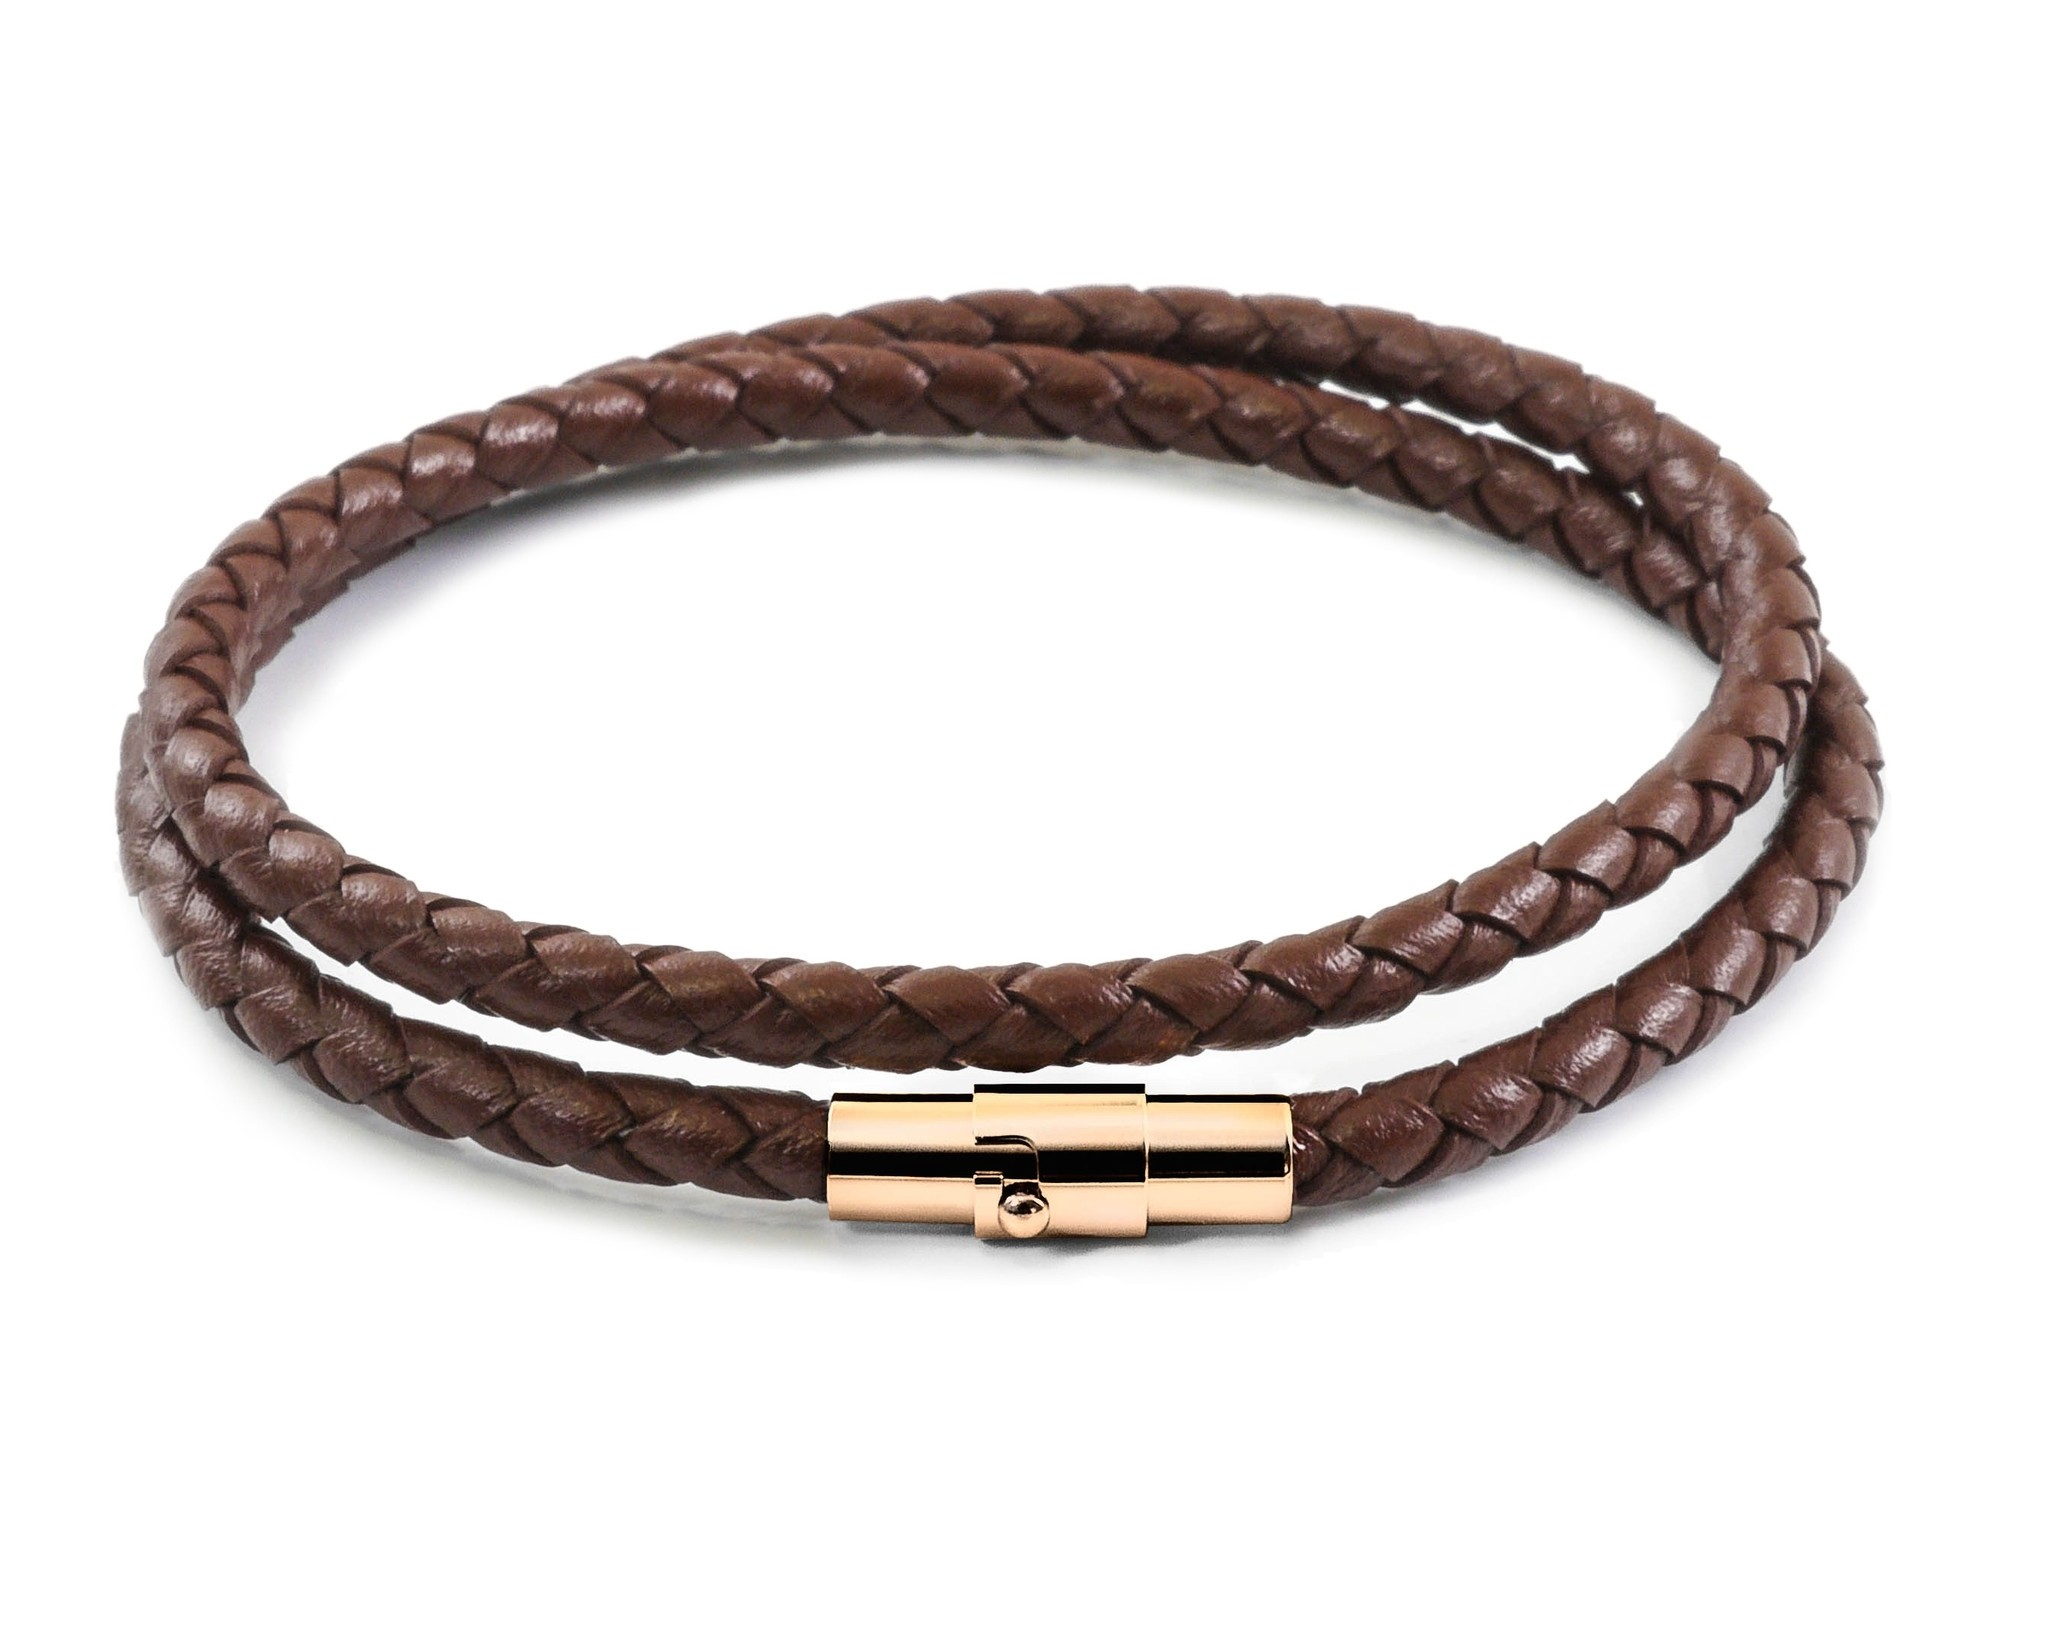 Vincero Bracelet Brown/Gold-36